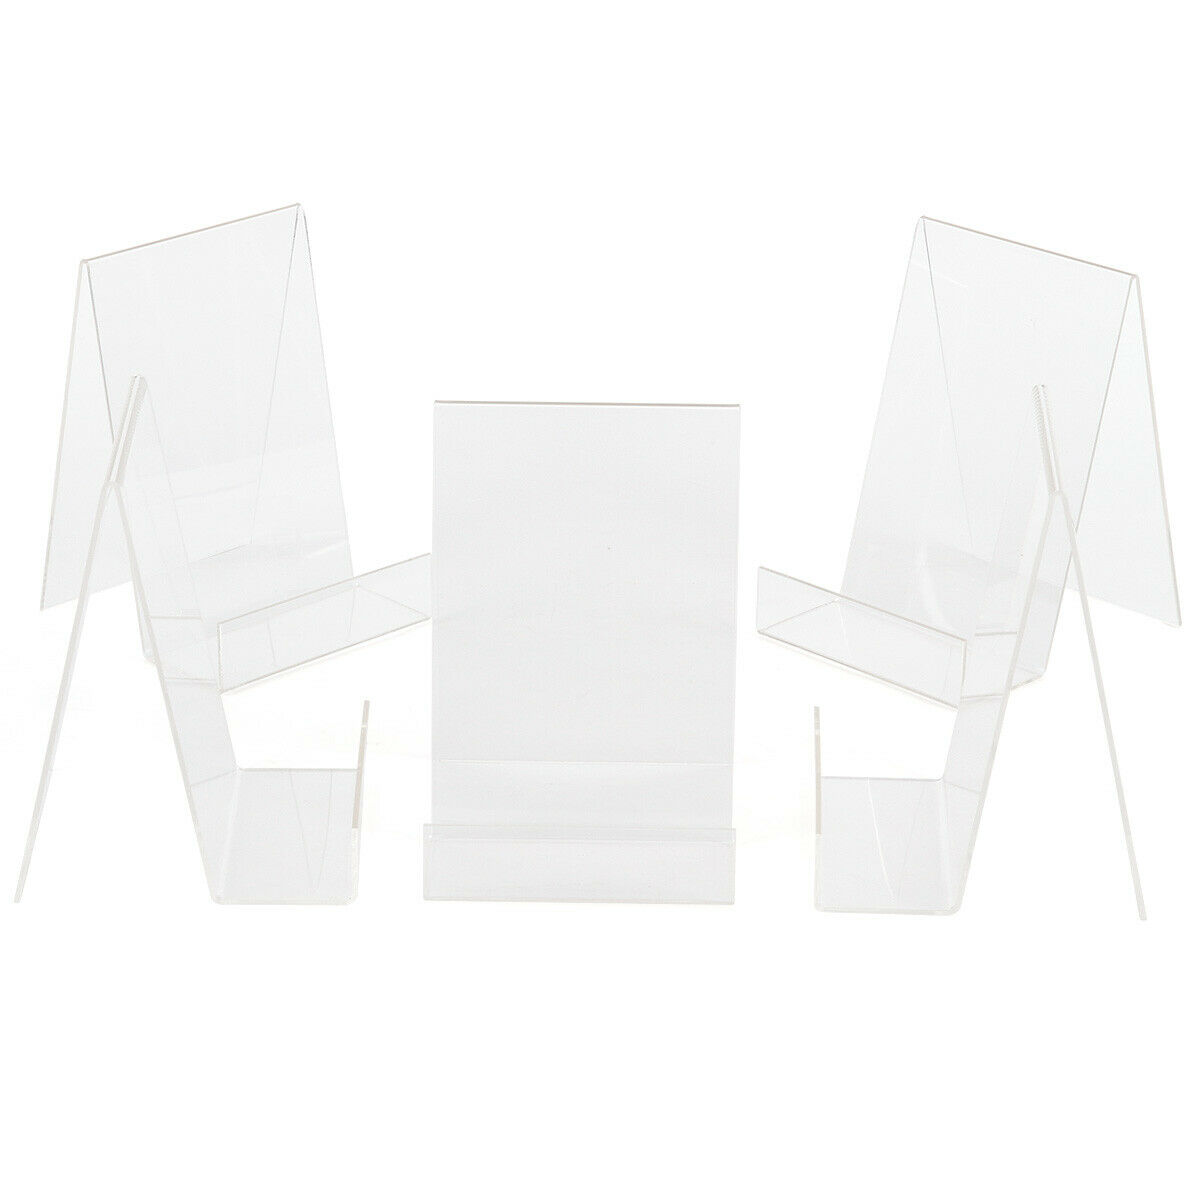 50pcs clear acrylic desktop business card sign display holder price 50pcs clear acrylic desktop business card sign display holder price label stand 1 of 1free shipping reheart Image collections